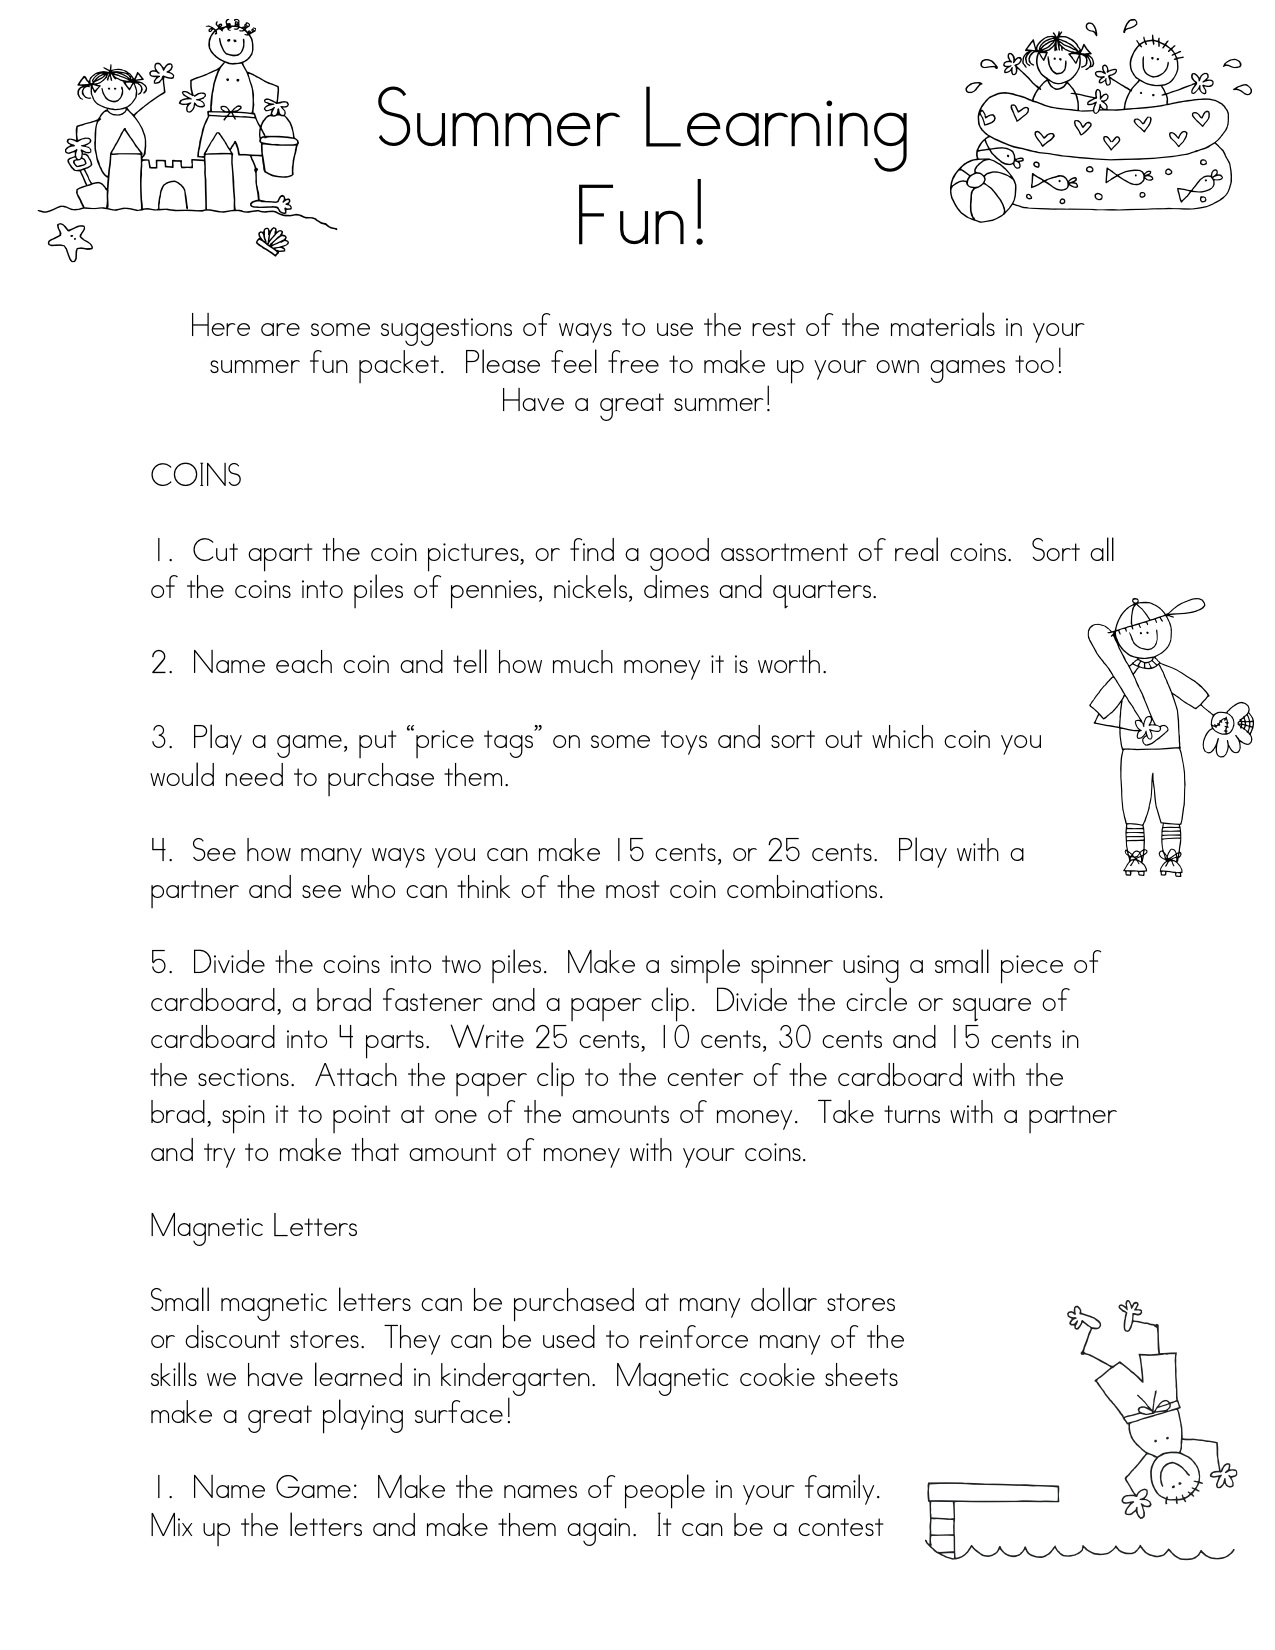 Kindergarten Parent Packet Images